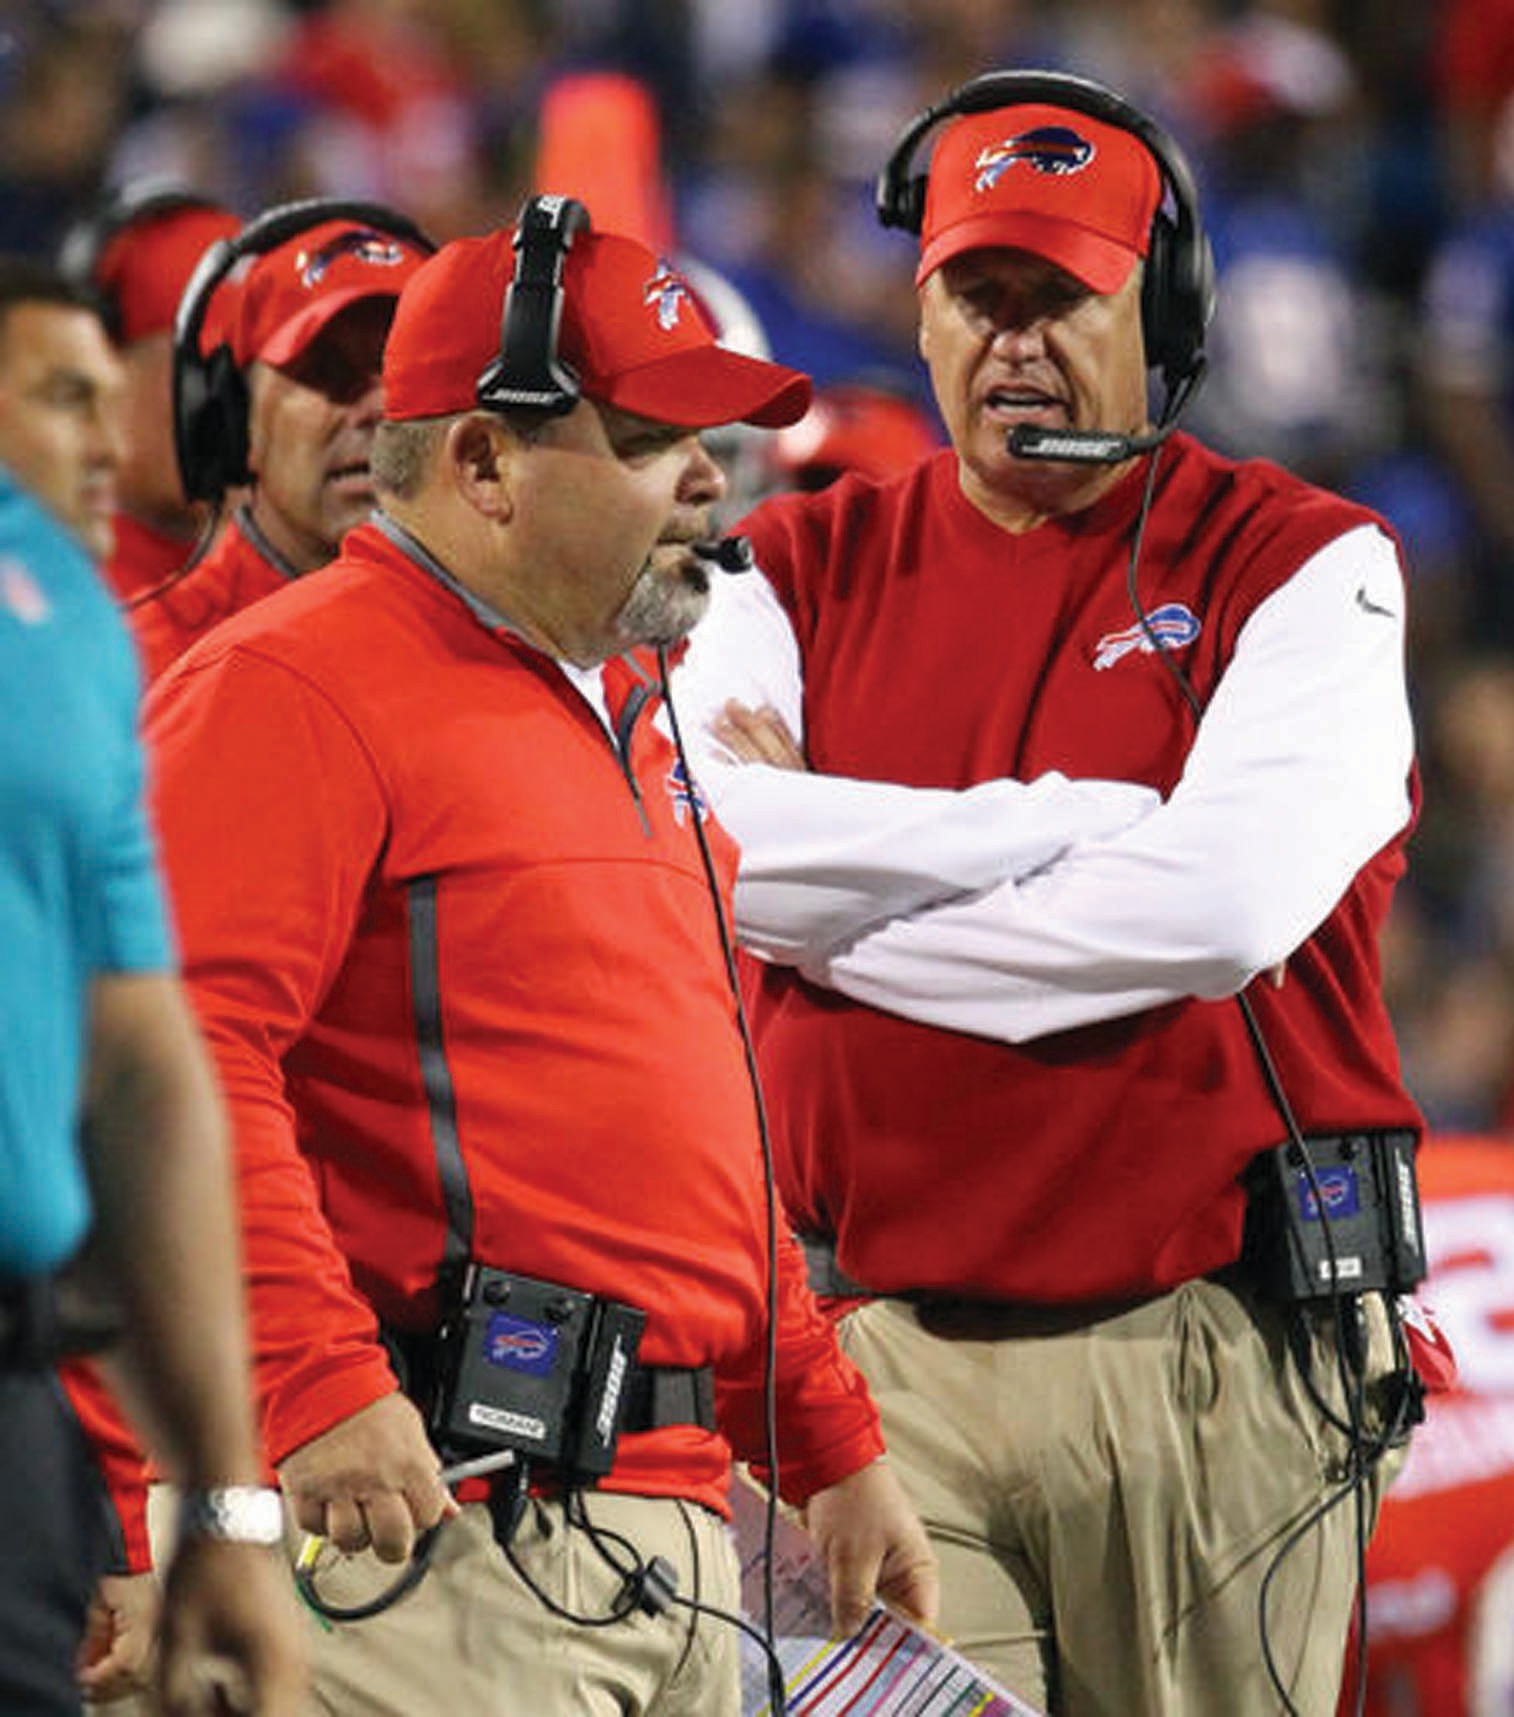 """In this Thursday, Sept. 15, 2016, file photo, Buffalo Bills offensive coordinator Greg Roman, left, and head coach Rex Ryan, right, work the sidelines during the first half of an NFL football game against the New York Jets in Orchard Park, N.Y. Buffalo Bills owner Terry Pegula tells The Associated Press that Rex Ryan has full authority in overseeing the team and fully supports the coach's decision to fire offensive coordinator Greg Roman. """"Head coach runs the team and staff,"""" Pegula wrote in a text message to the AP in disputing questions about who made the decision to fire Roman on Friday, Sept. 16, 2015."""